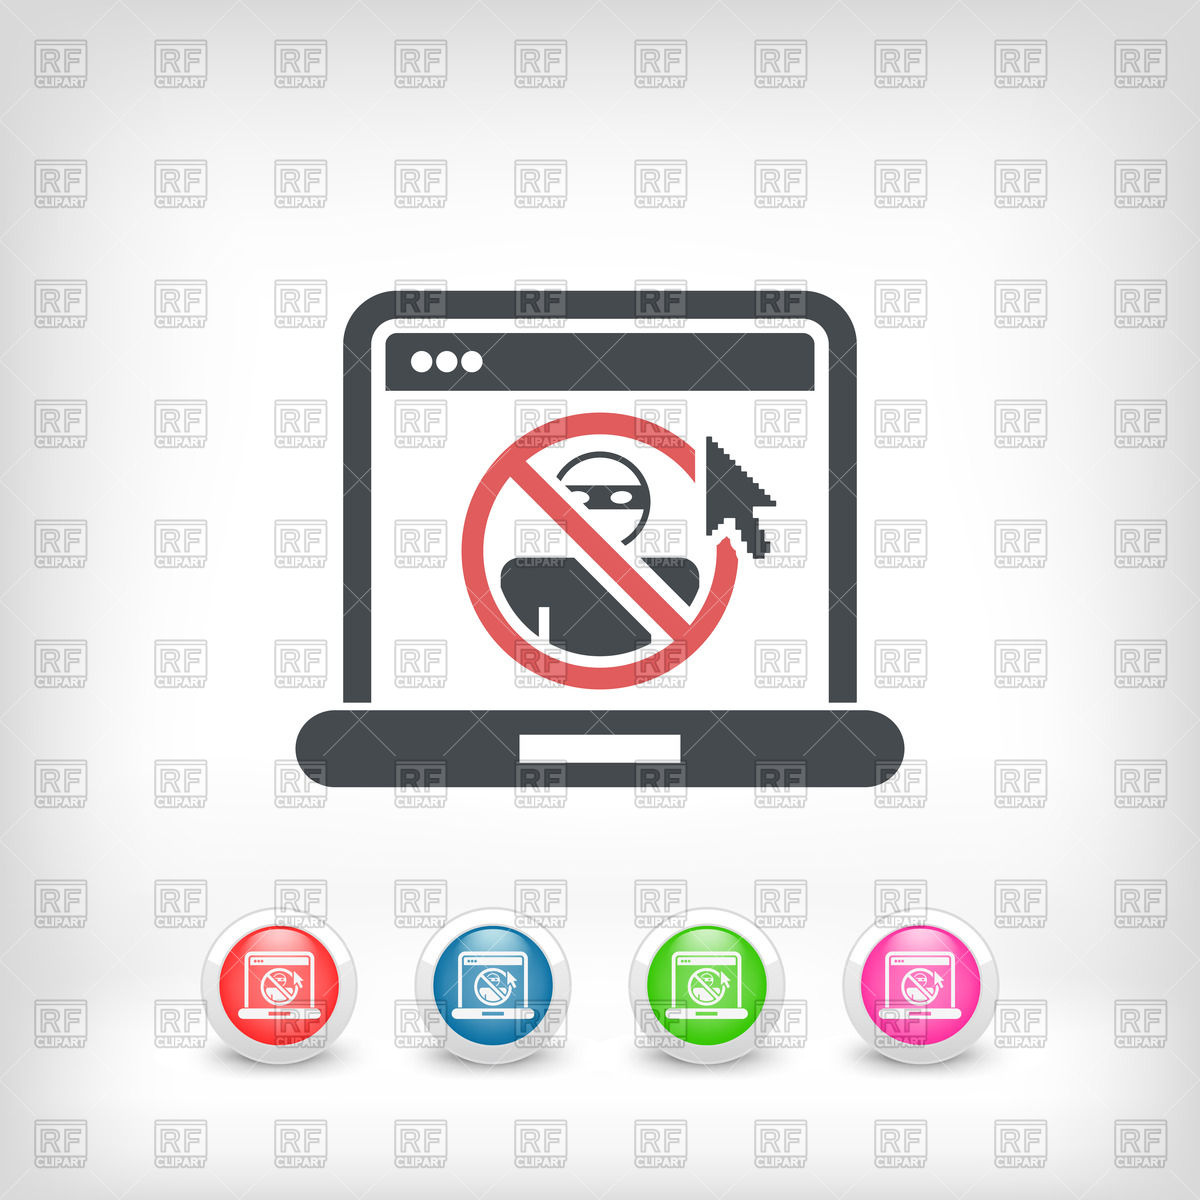 Web access data protection icon on laptop Vector Image #62844.